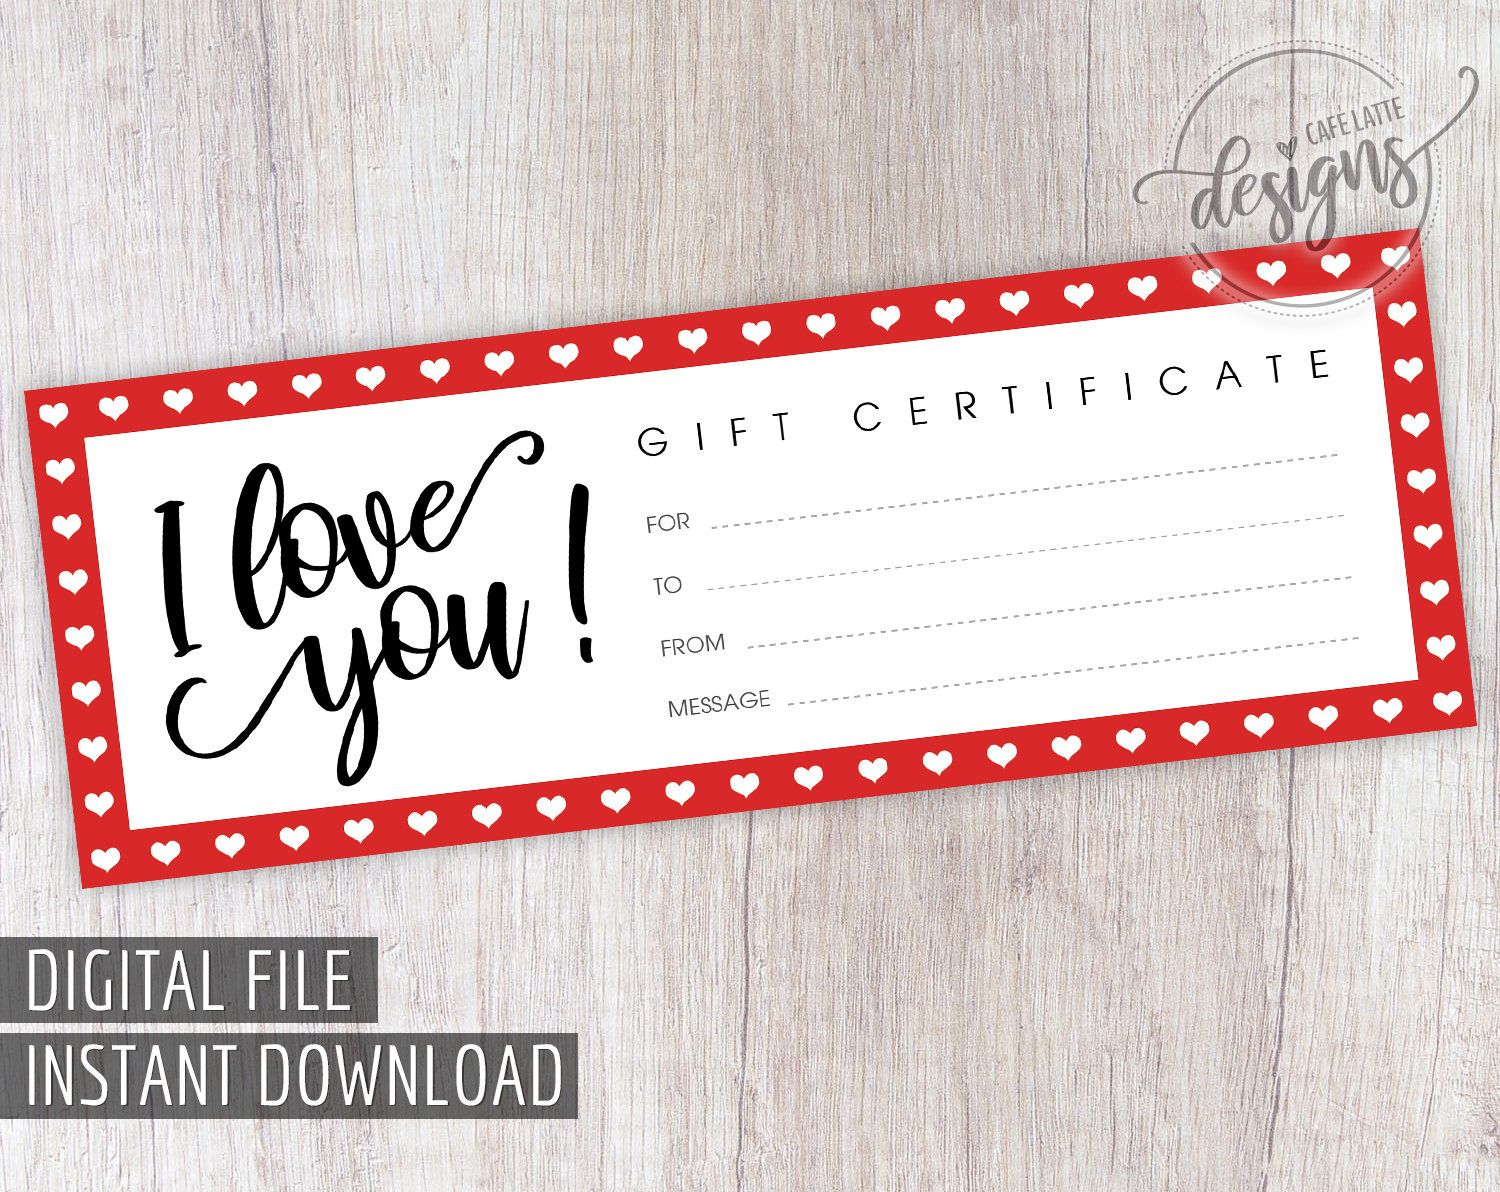 Gift Certificate Printable Mother S Day Christmas Gift Etsy Printable Gift Certificate Birthday Gifts For Grandma Diy Gifts For Mothers